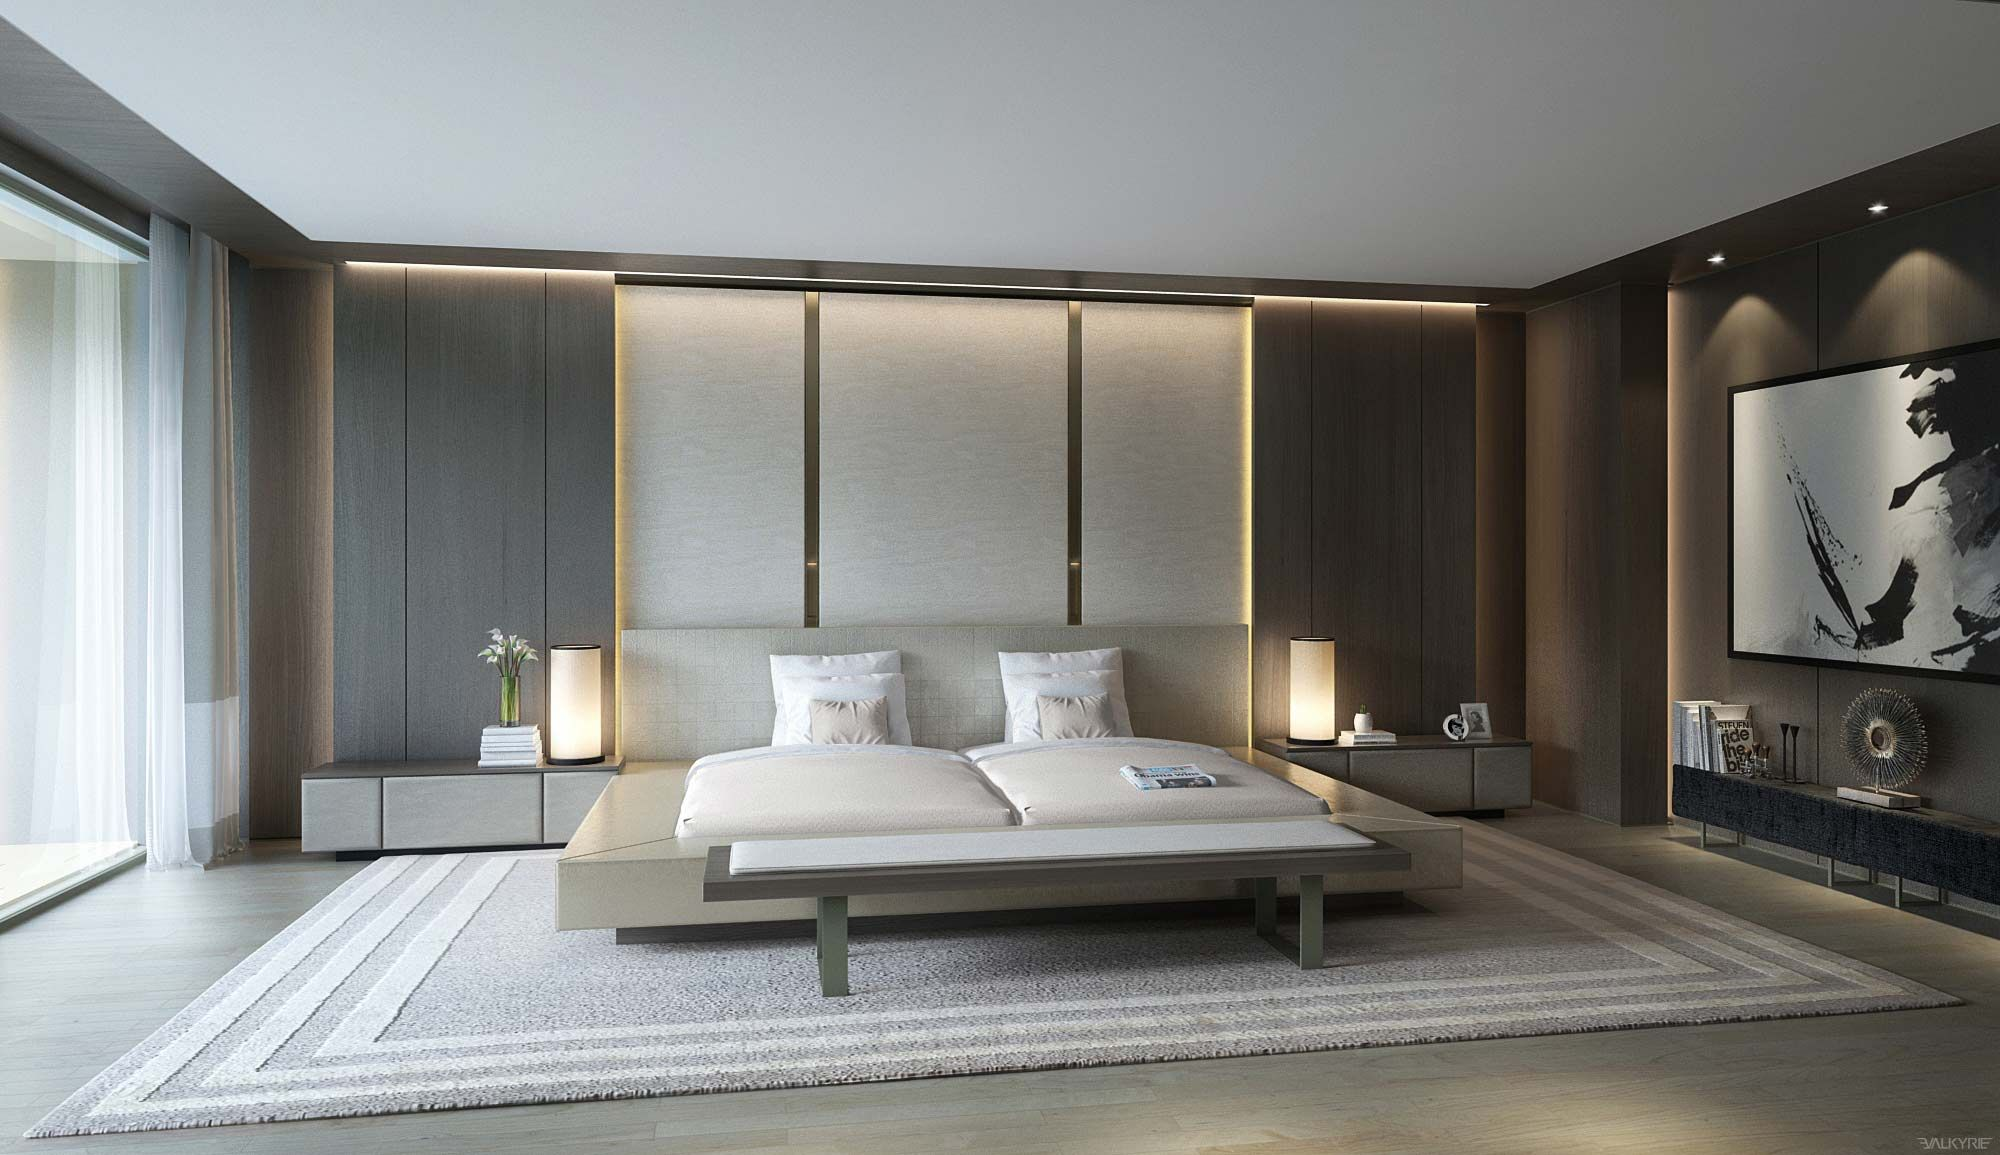 Best 21 Cool Bedrooms For Clean And Simple Design Inspiration 400 x 300